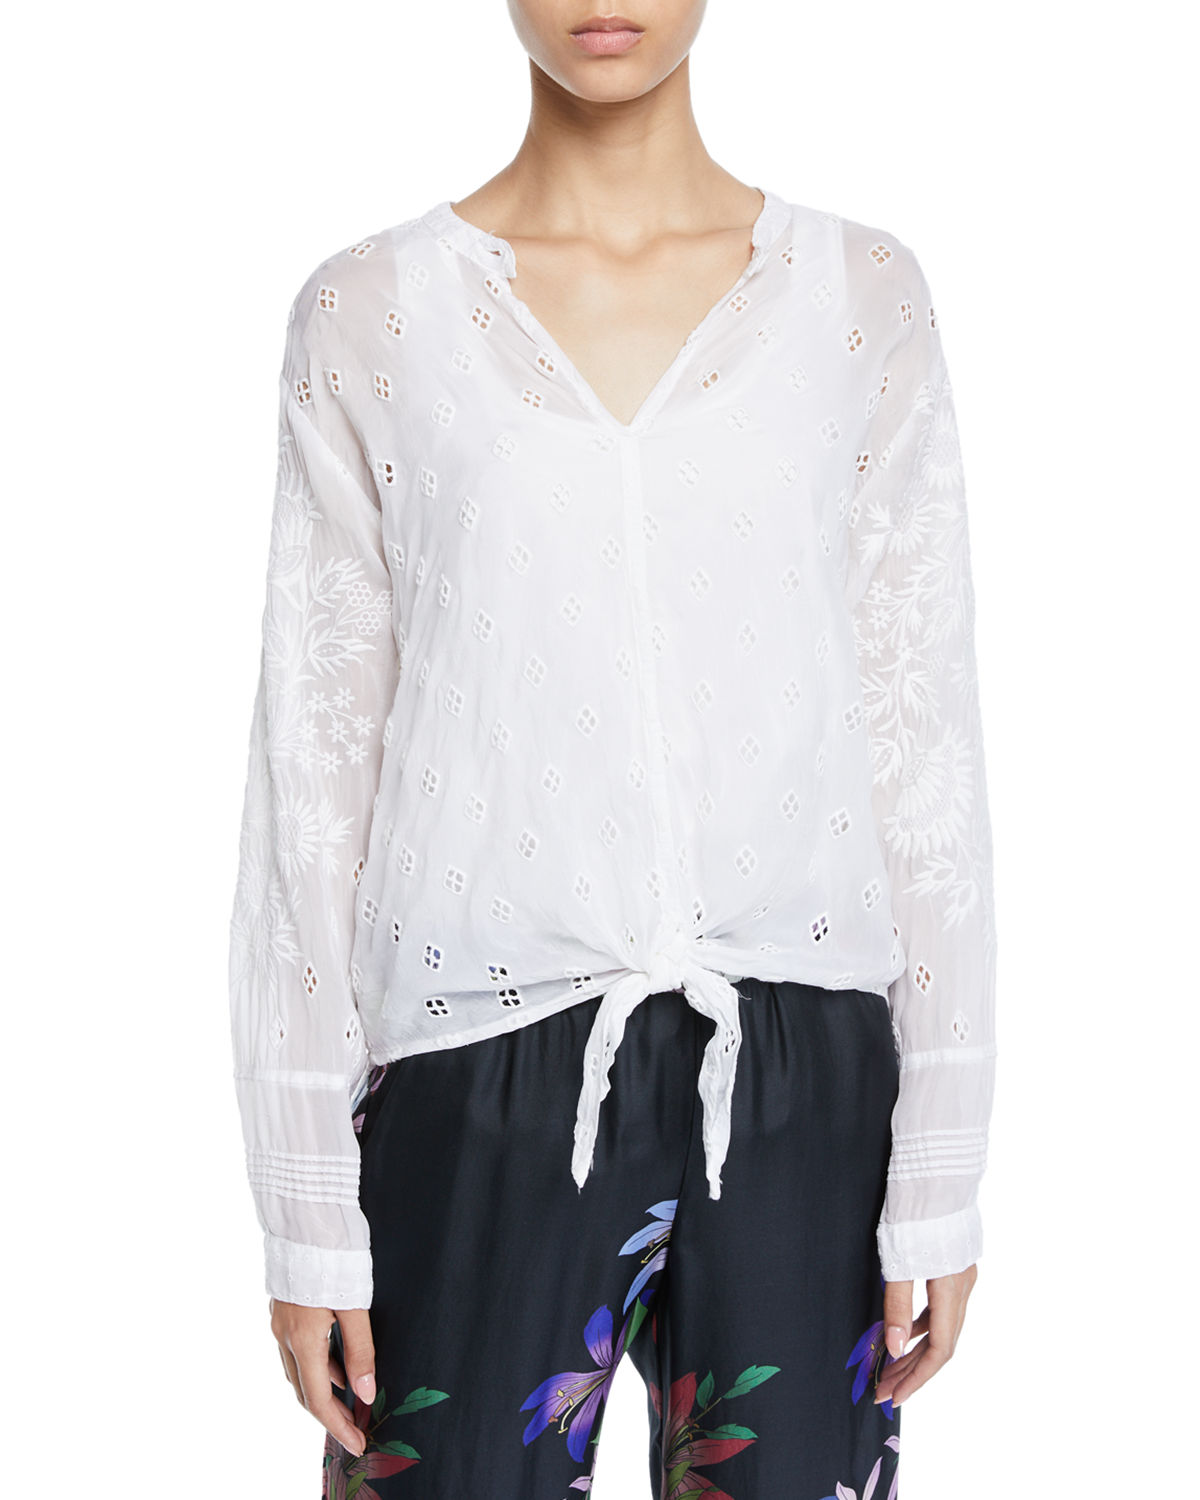 Johnny Was Tops PLUS SIZE HUNTER LONG-SLEEVE TIE-FRONT SHEER GEORGETTE BLOUSE